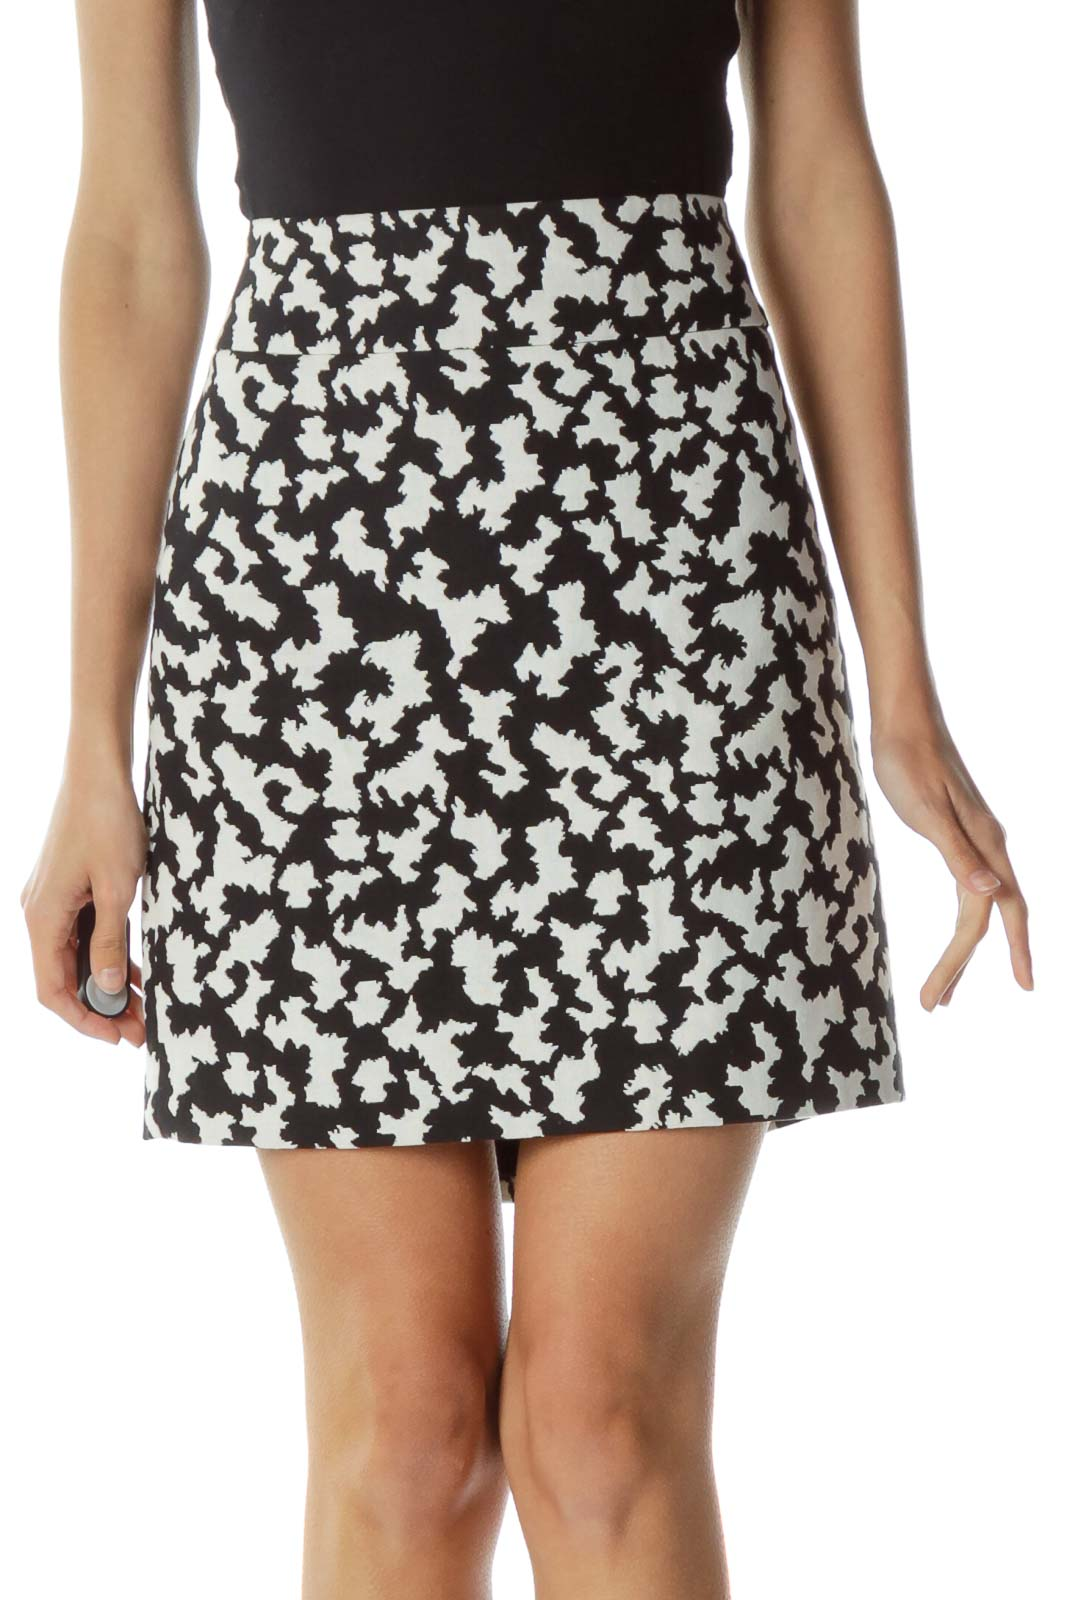 Black Cream Print Mini Skirt